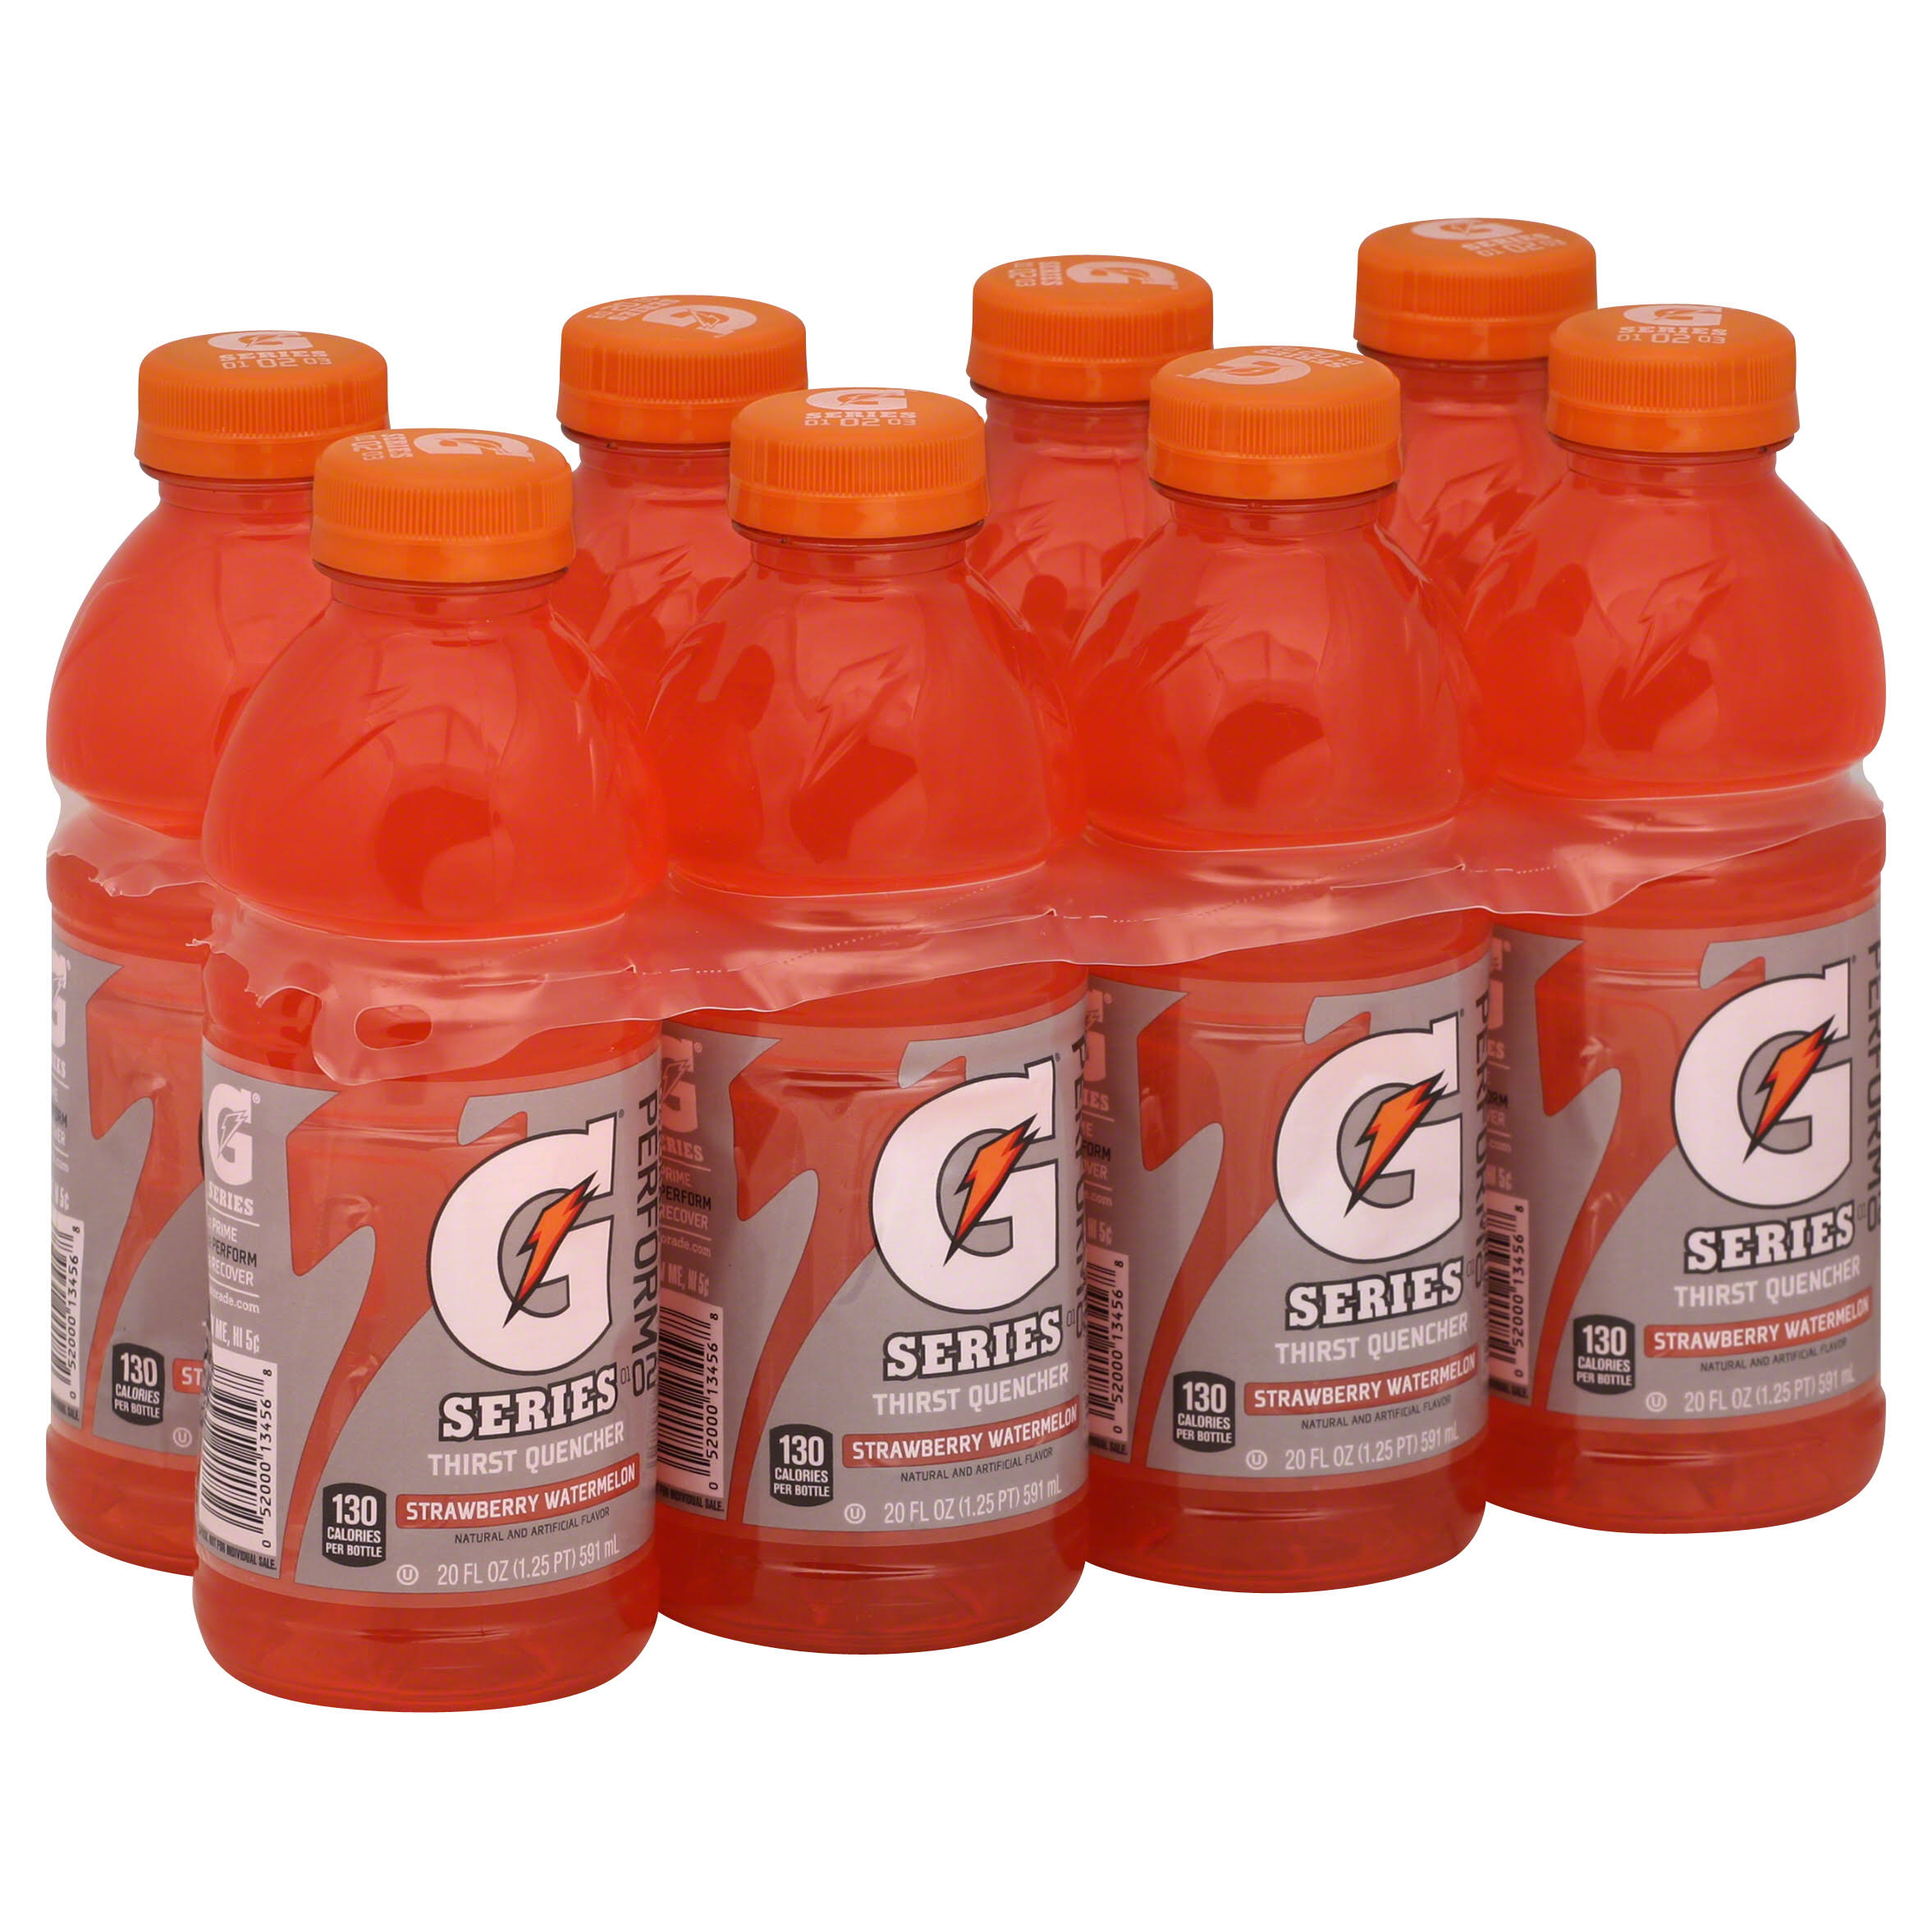 Gatorade Thirst Quencher Sports Drink - Strawberry Watermelon, 20oz